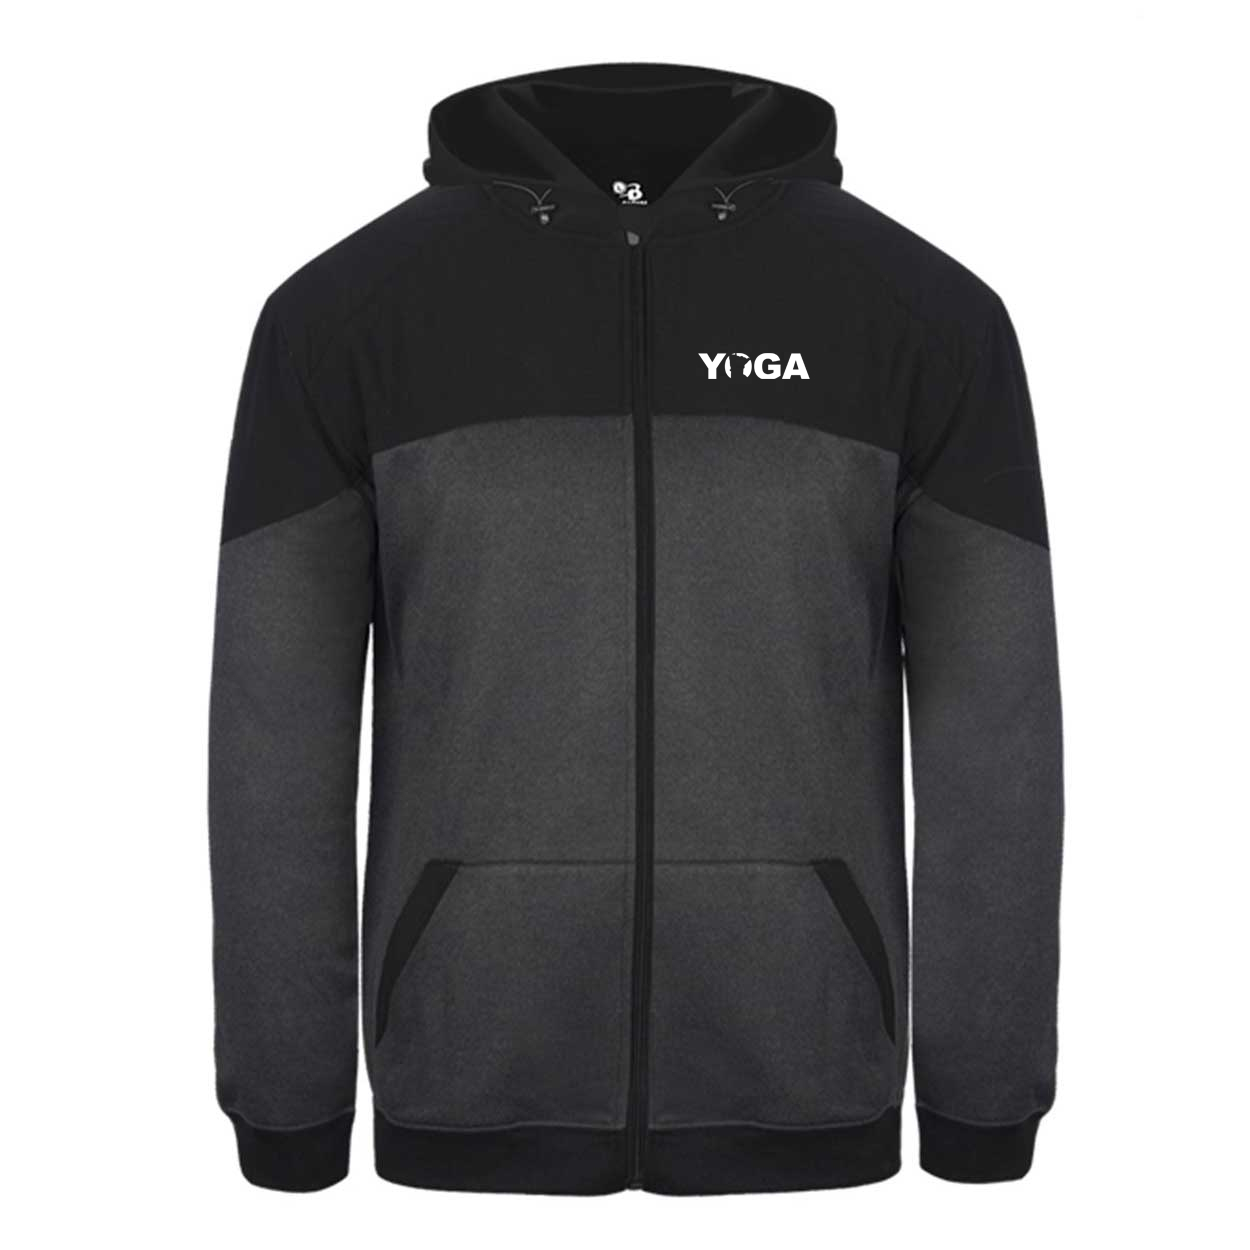 Yoga Minnesota Classic Vindicator Jacket Carbon Heather/Black (White Logo)